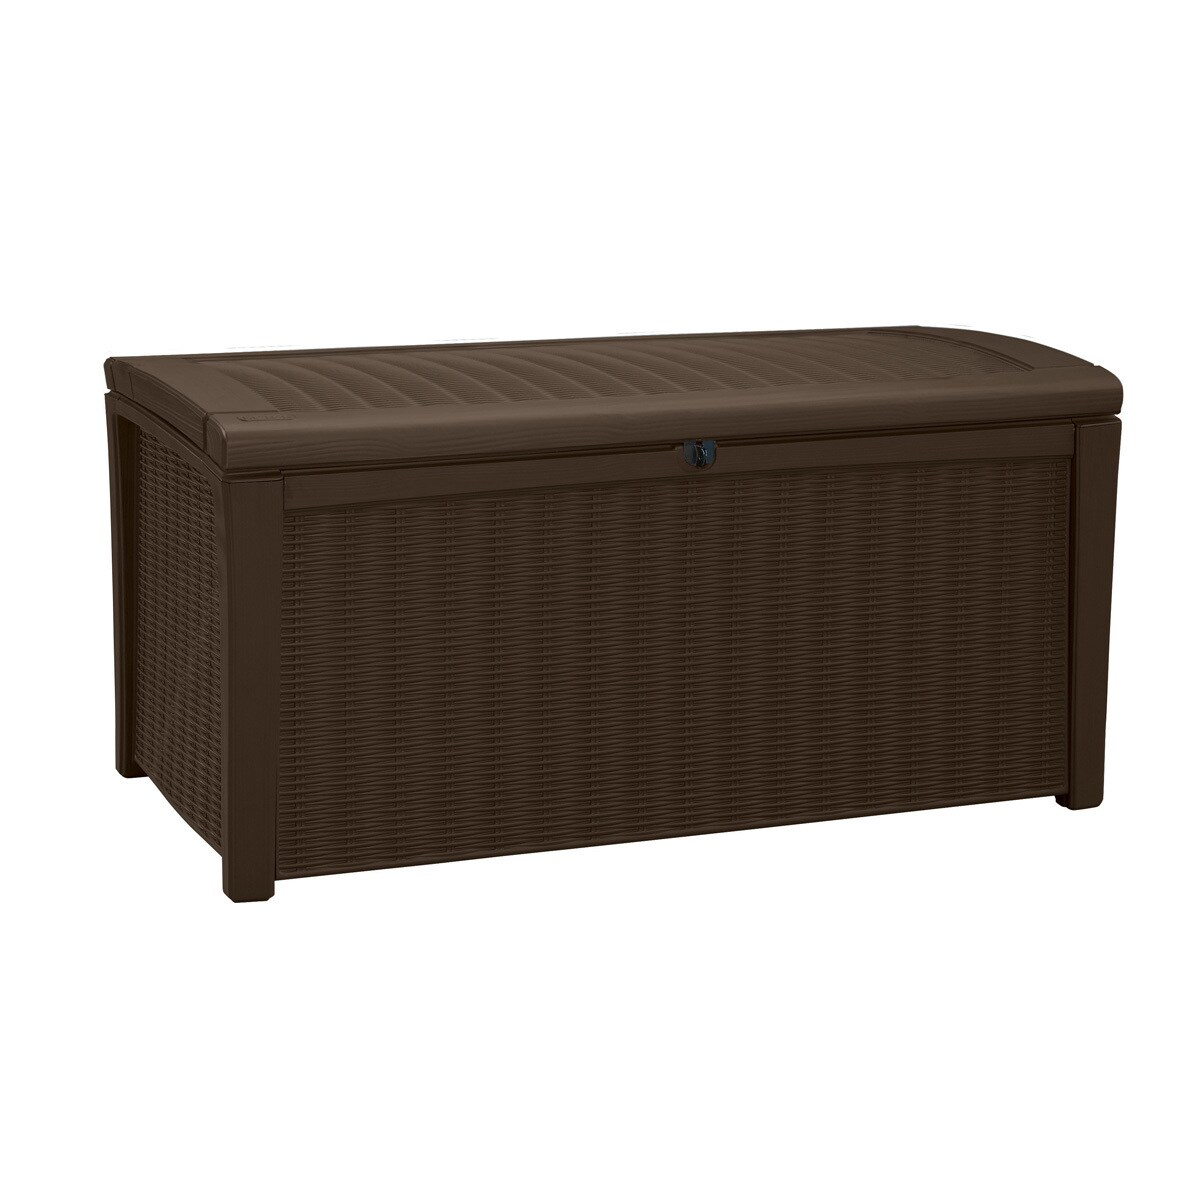 Outdoor Patio Storage Container Box Bench Brown Rattan Weather